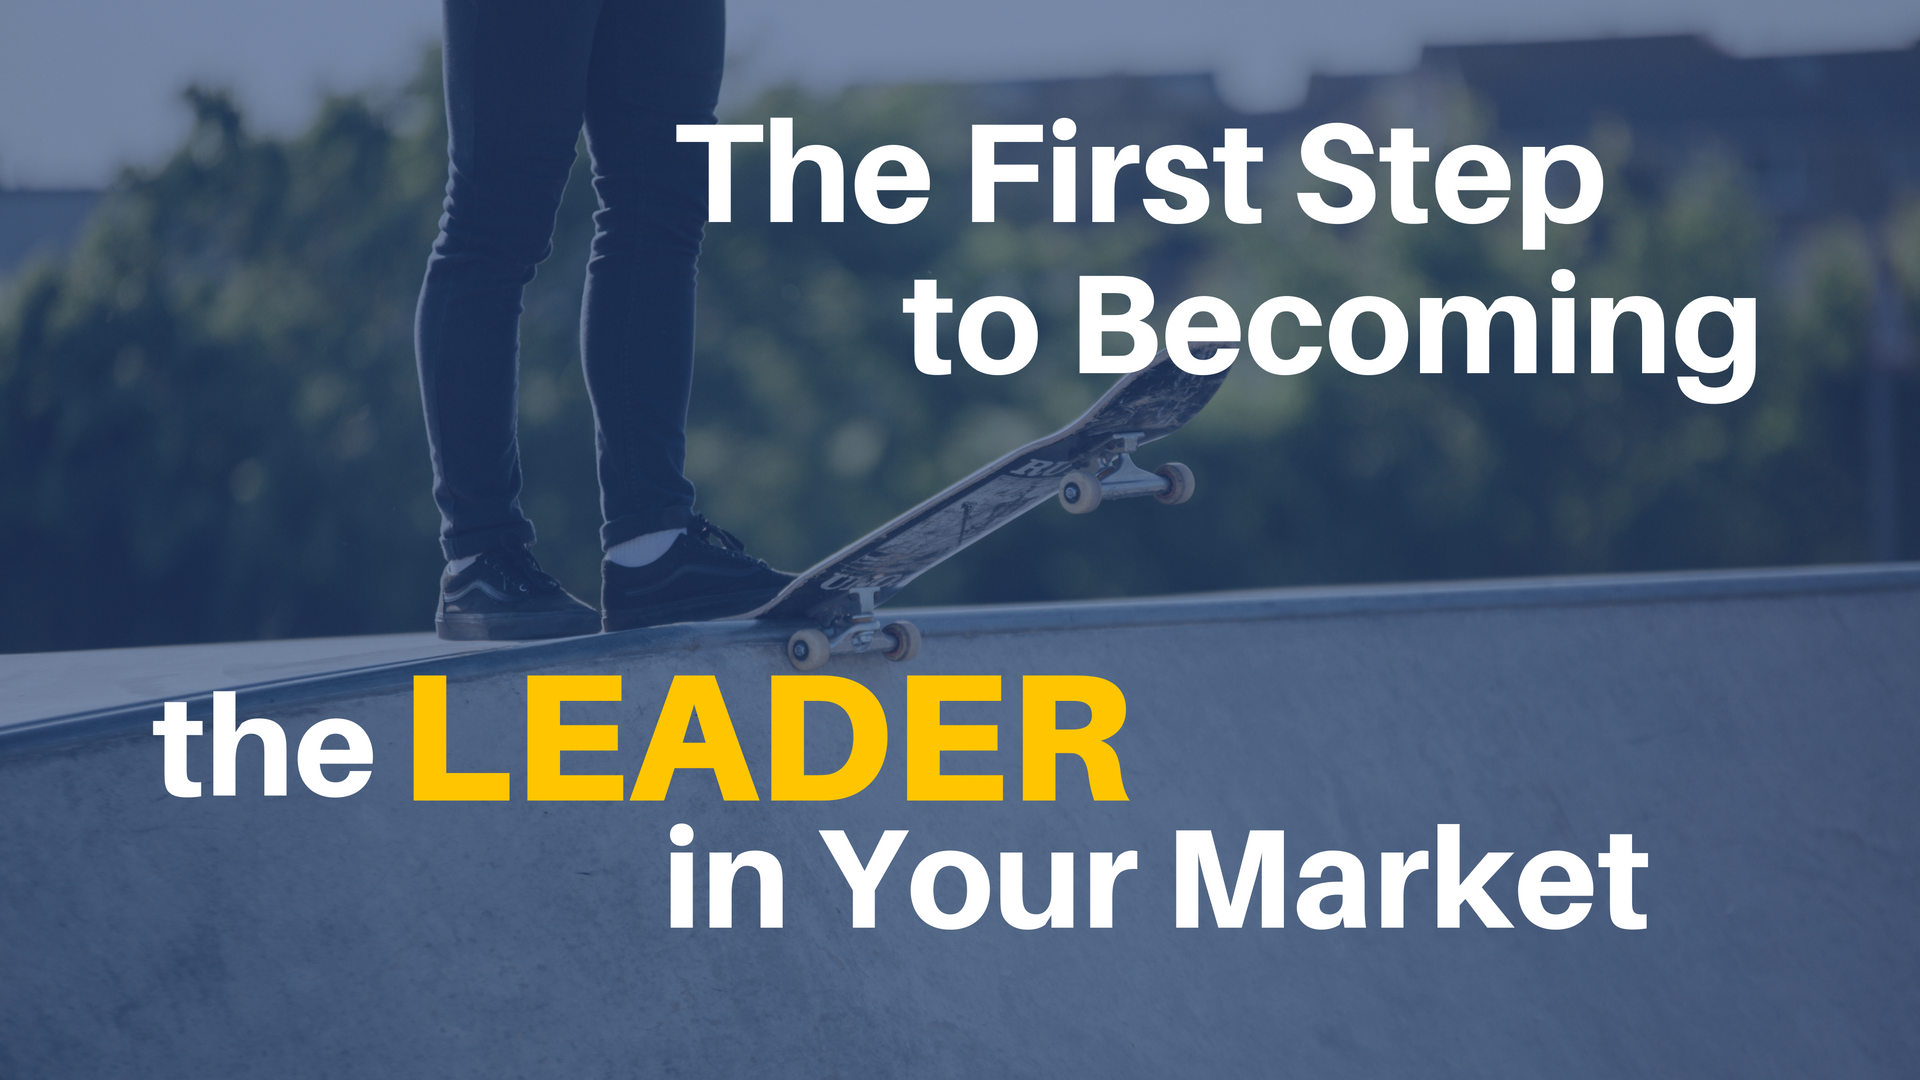 The First Step to Becoming THE Leader in Your Market